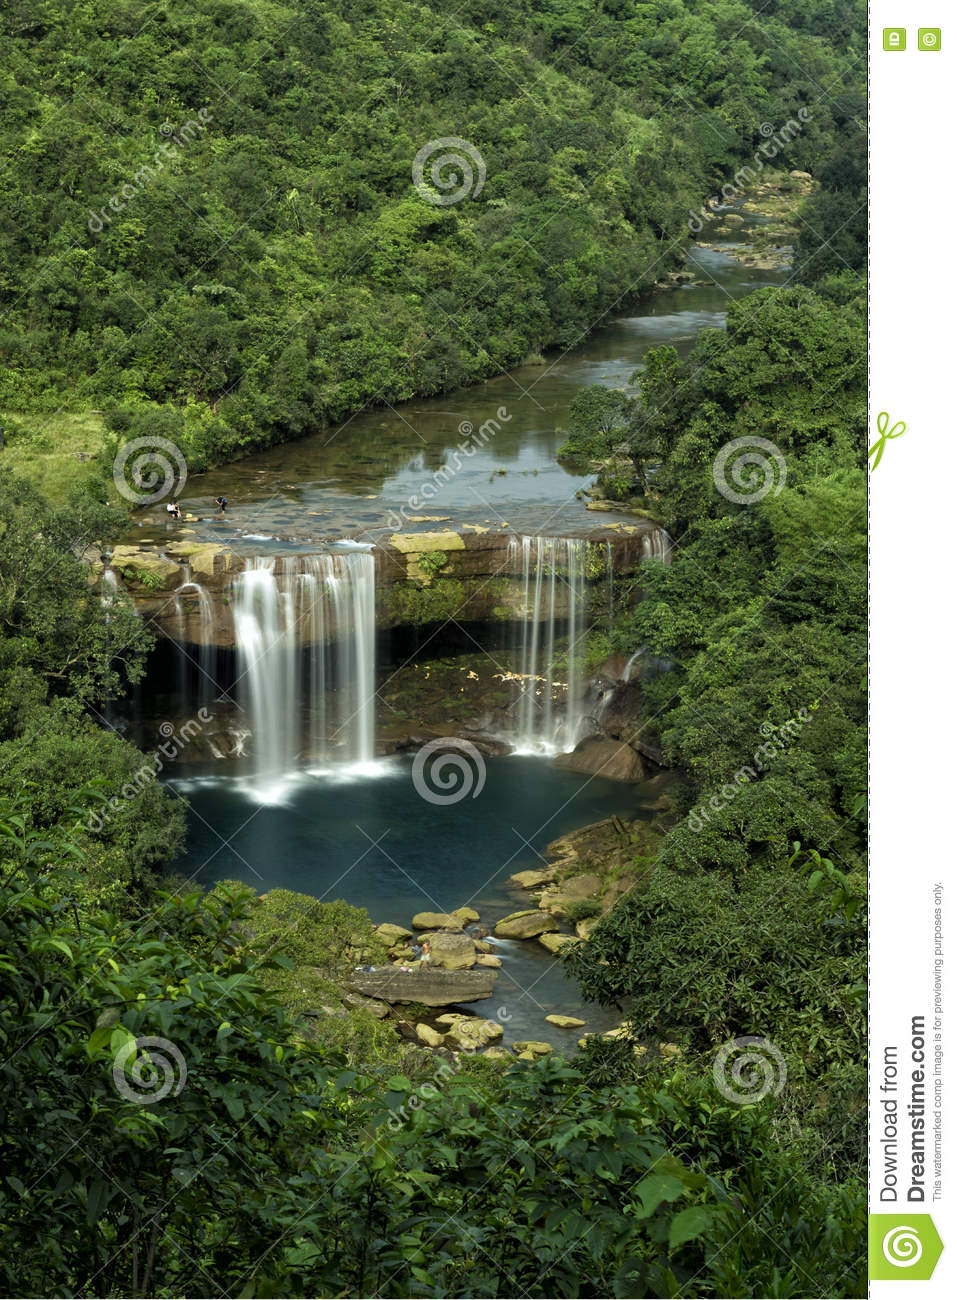 Krang Suri Waterfall Stock Photo Image 74315770